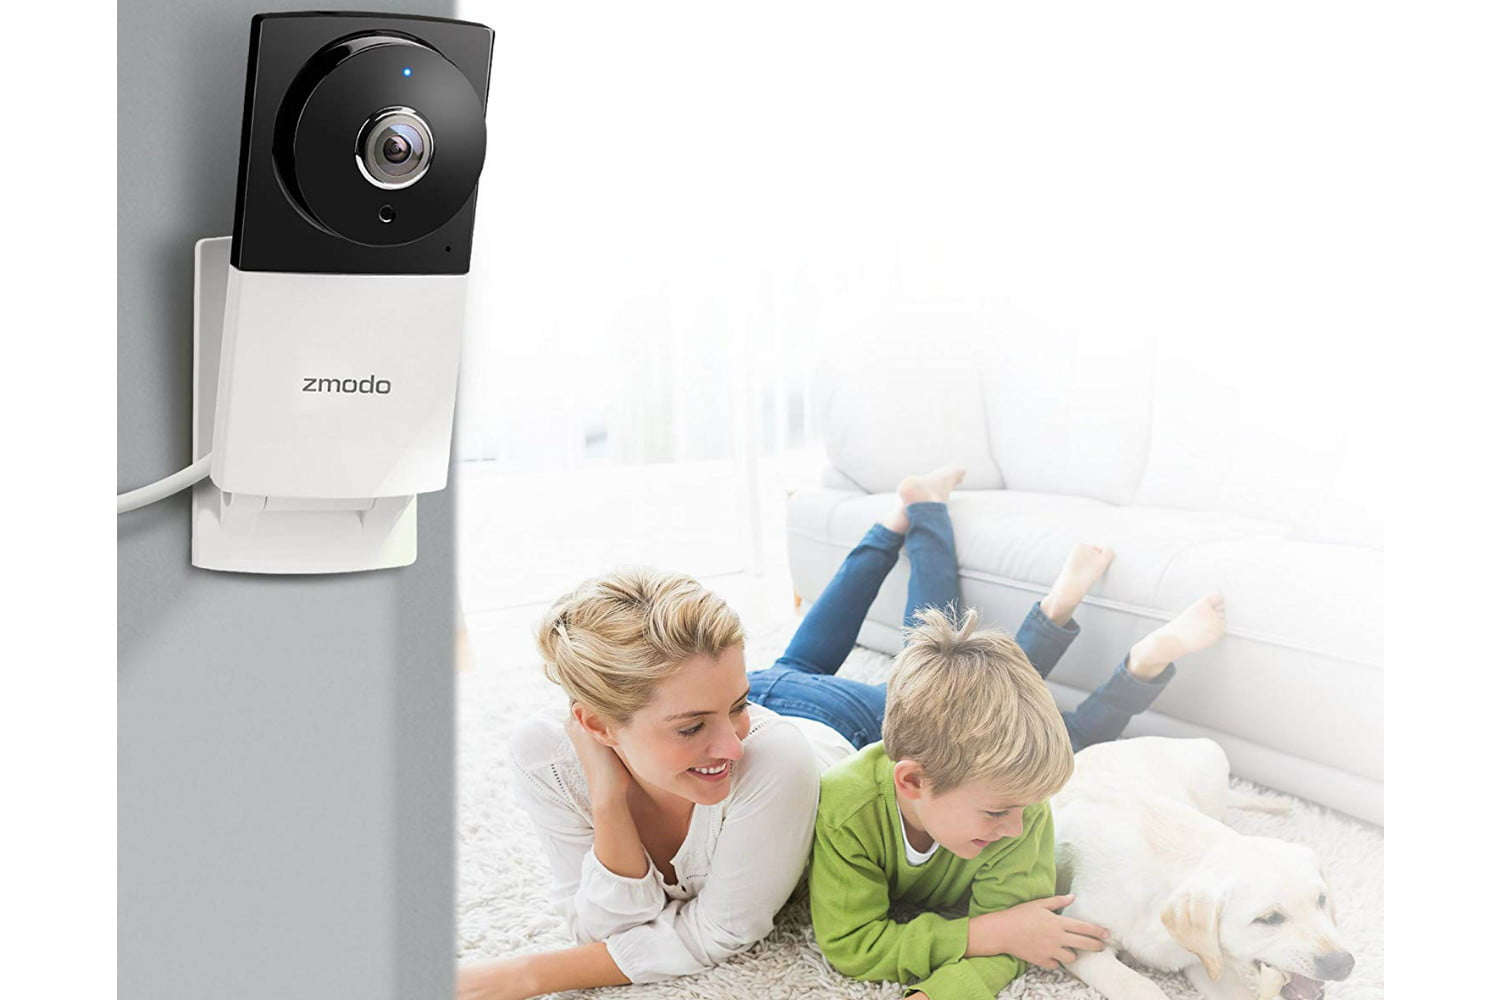 amazon daily deal kasa and zmodo security cameras sight 180 c home camera 2